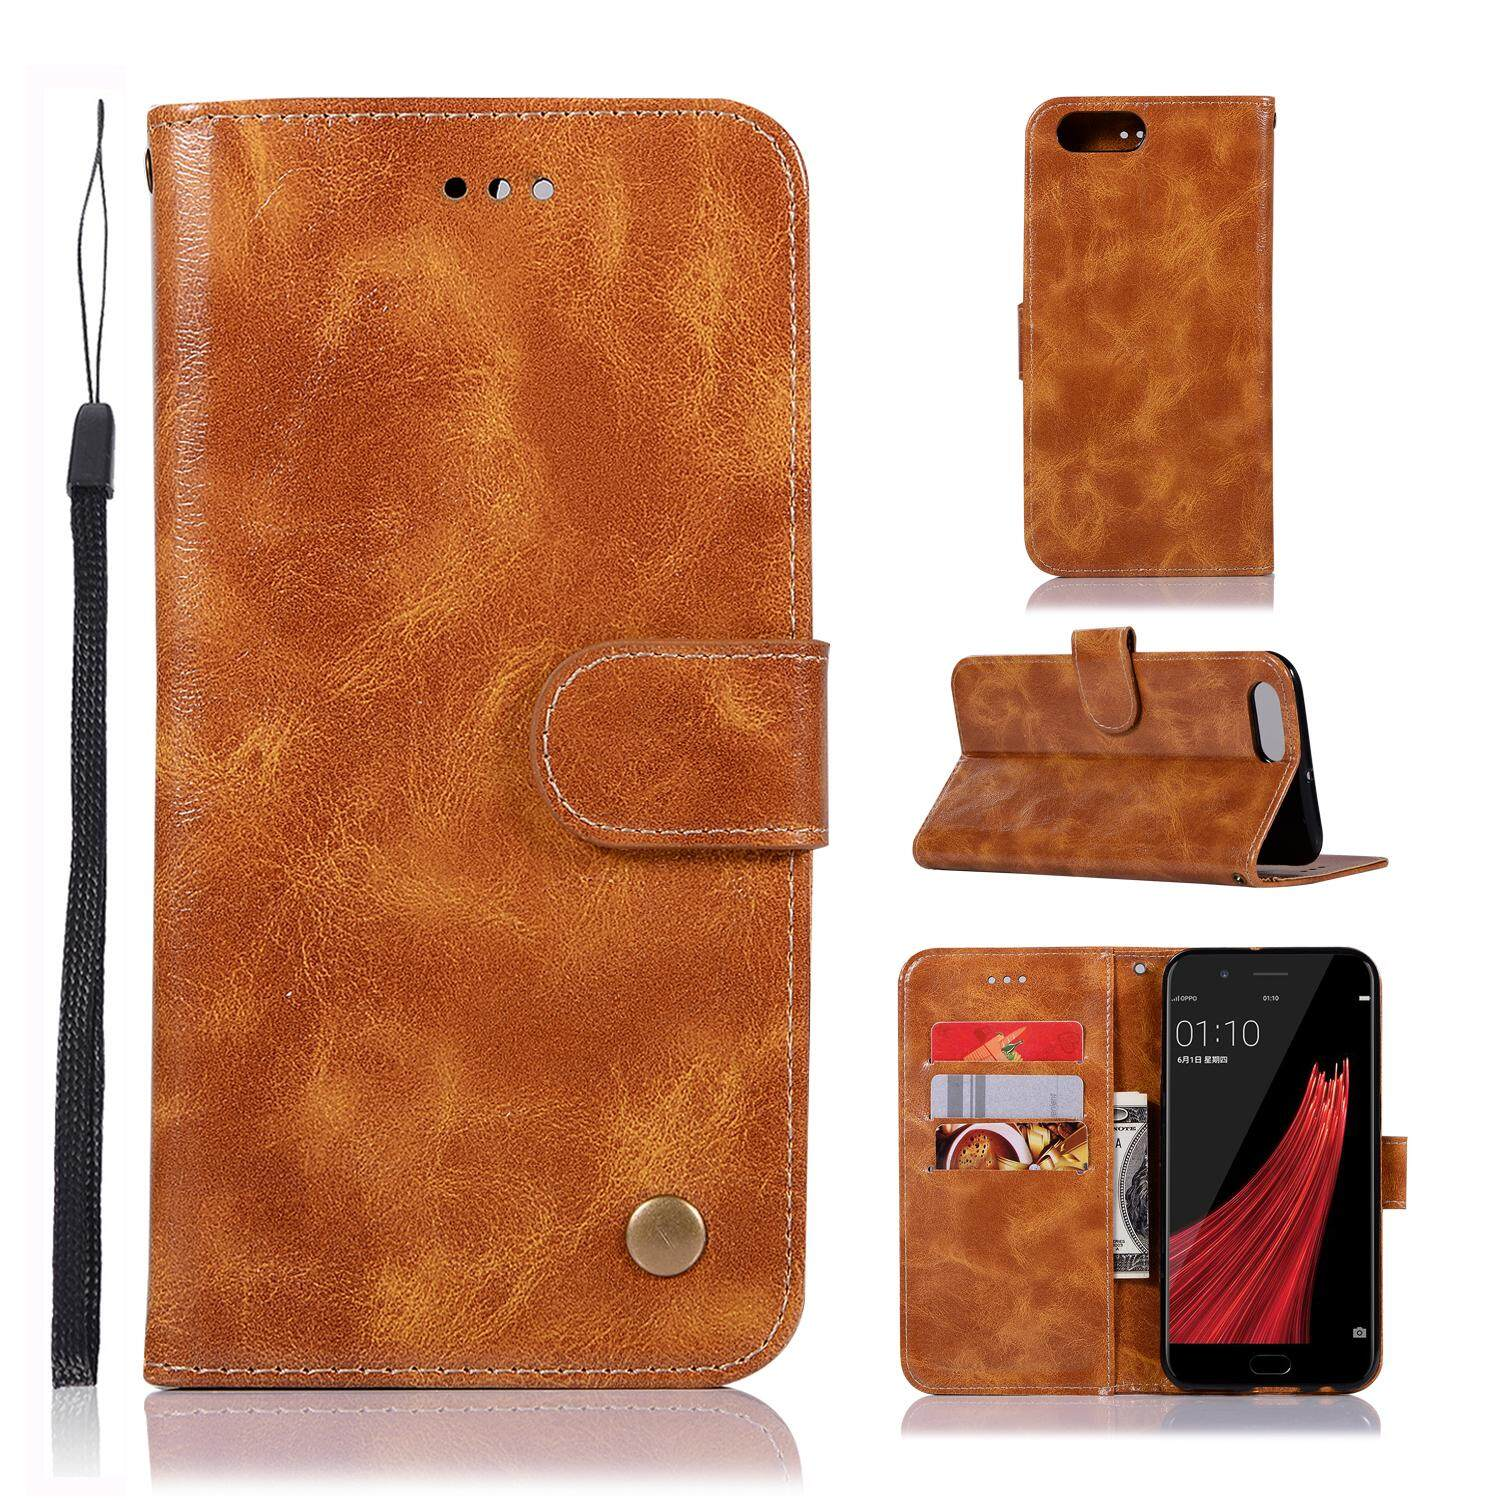 Casing For Oppo R11,reto Leather Wallet Case Magnetic Double Card Holder Flip Cover By Life Goes On.